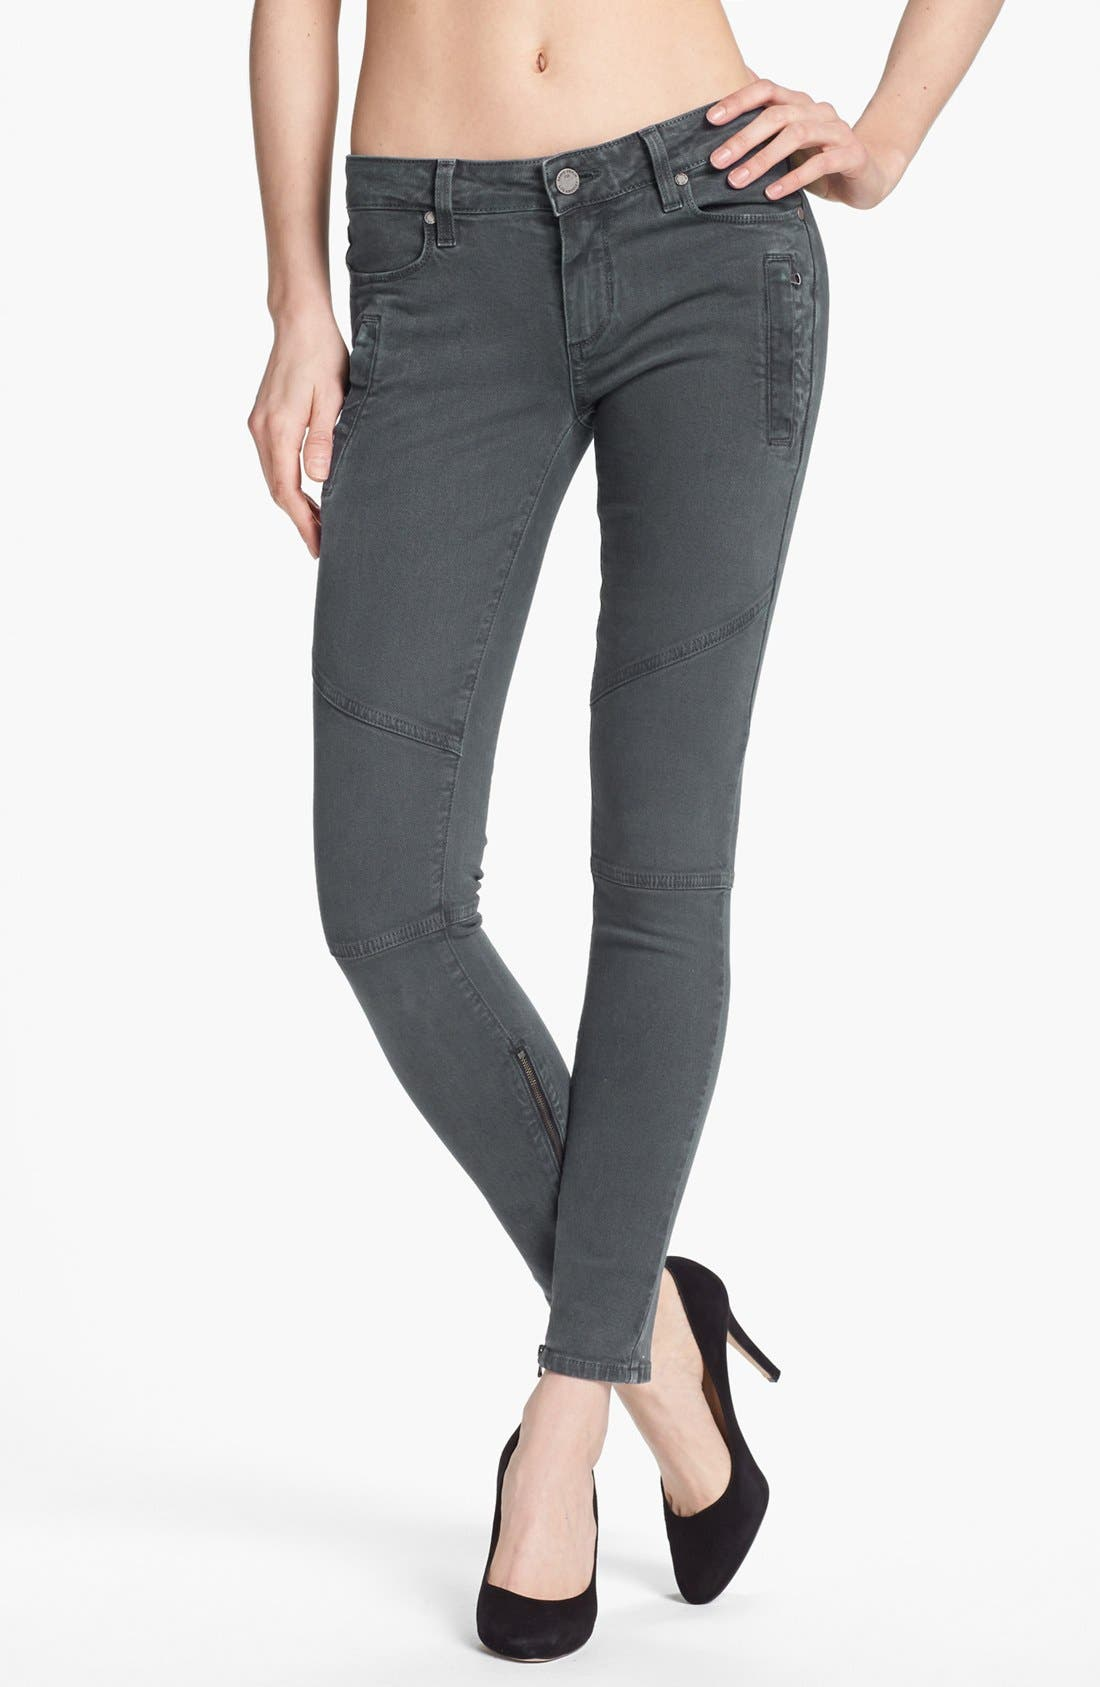 Alternate Image 1 Selected - Paige Denim 'Marley' Seam Detail Skinny Jeans (Black Current)